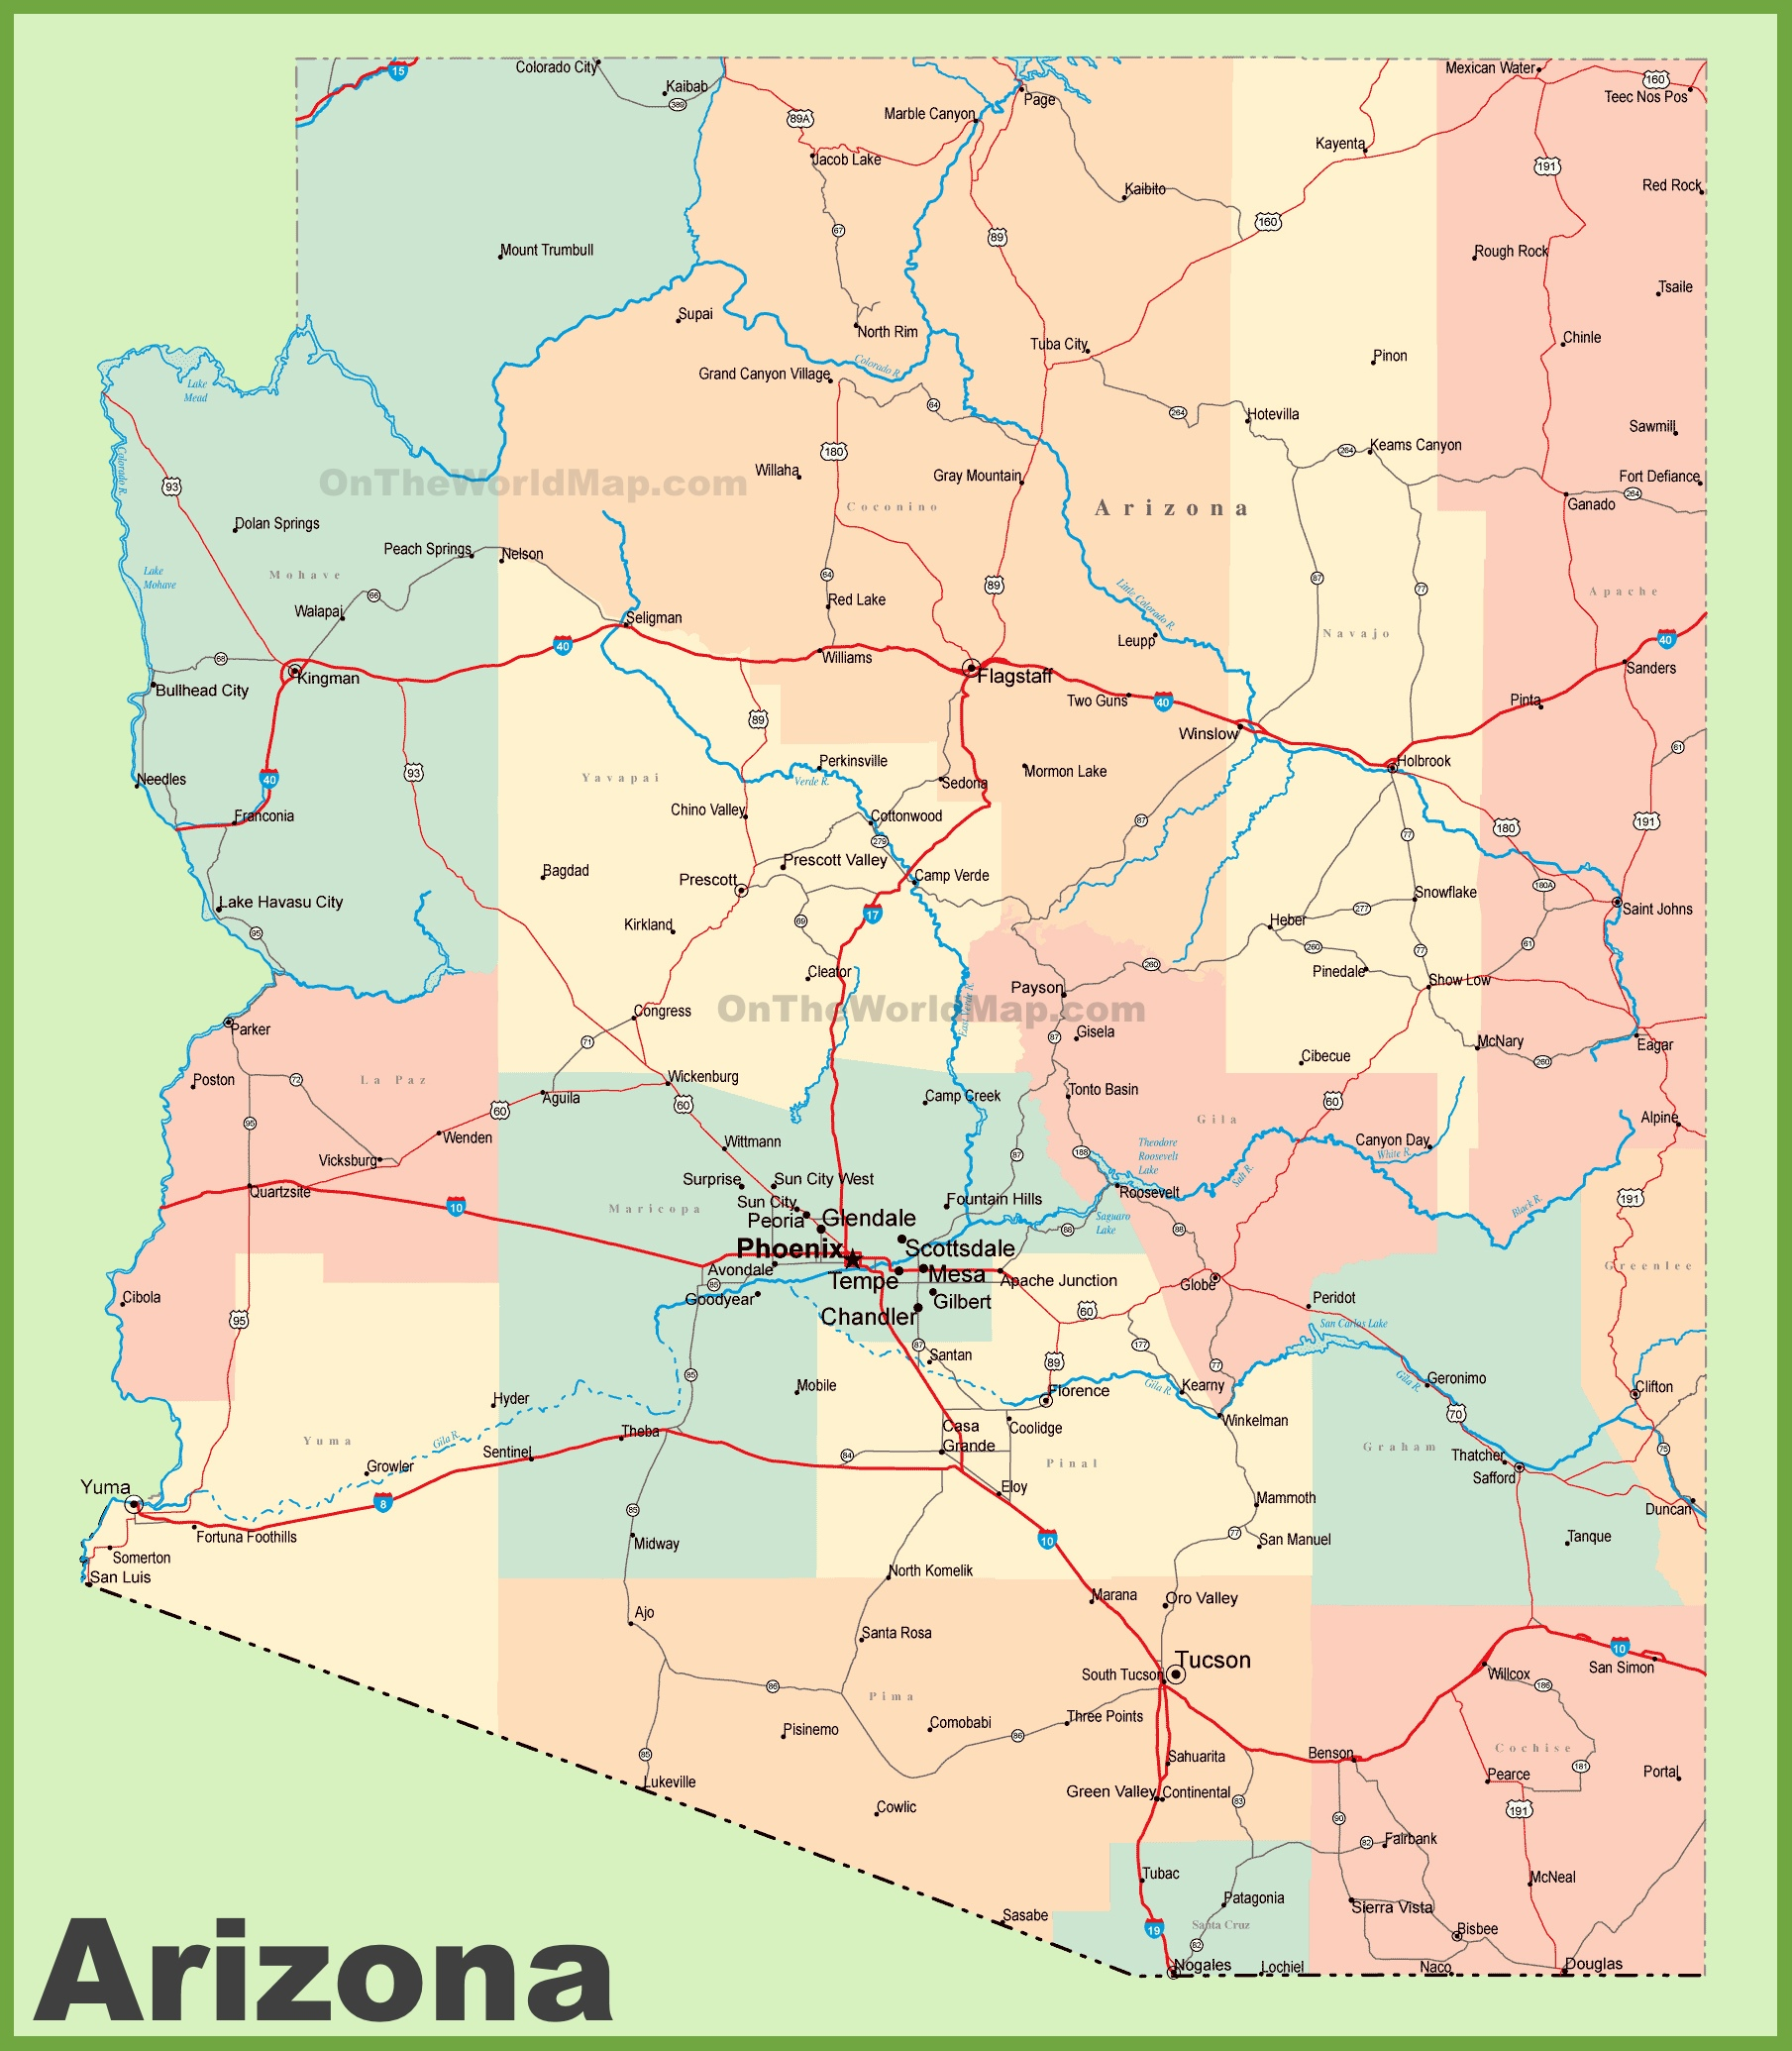 Map Of Arizona With Cities Arizona road map with cities and towns